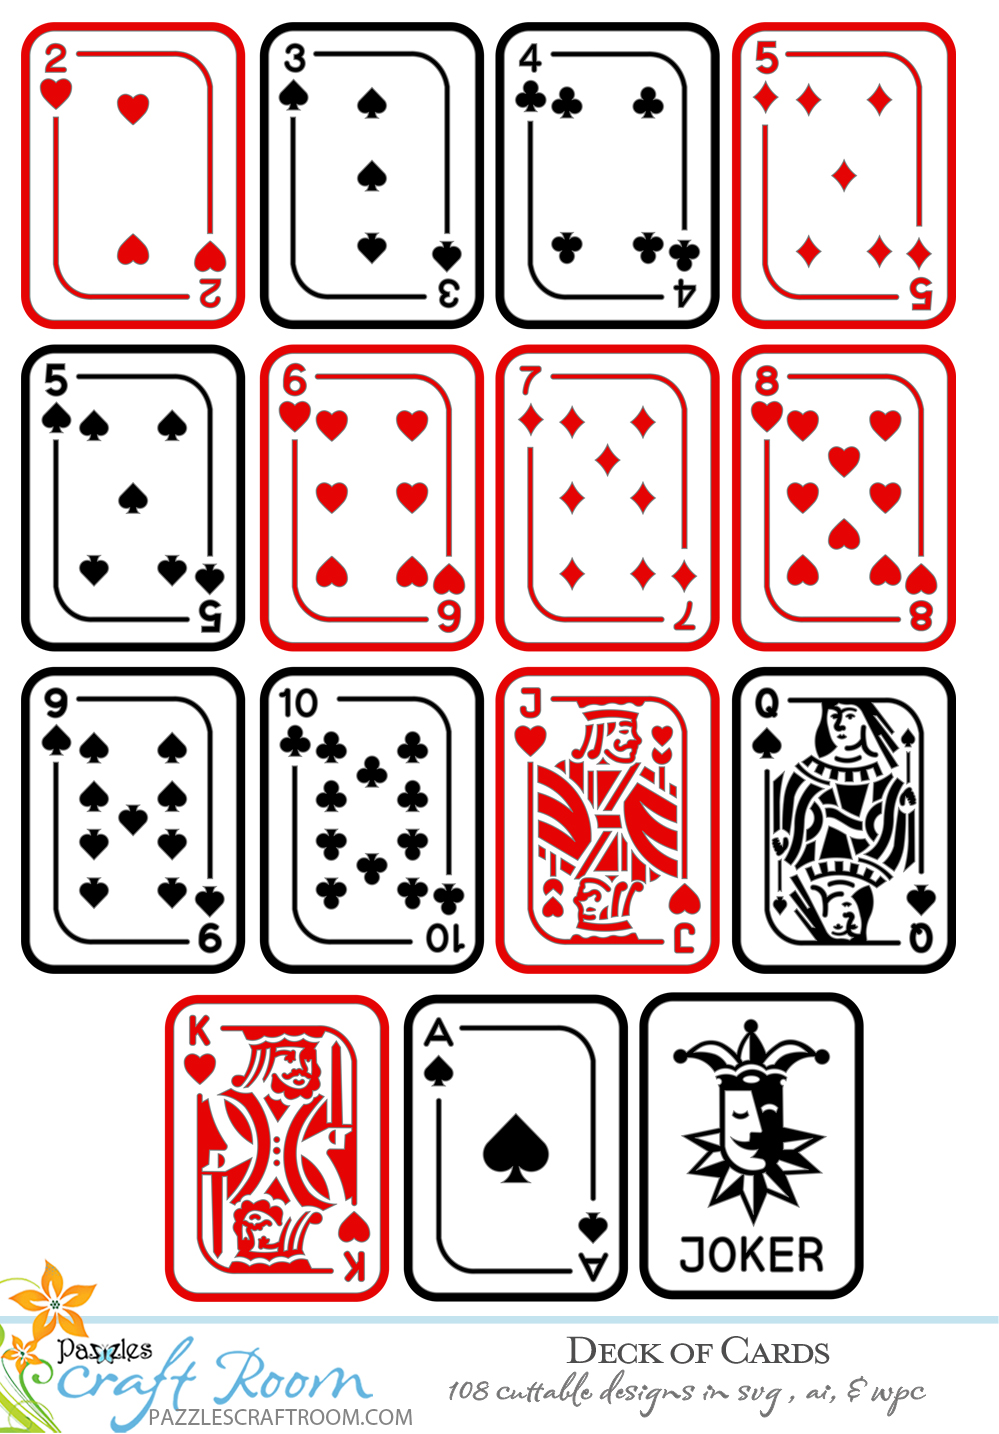 Pazzles DIY Deck of Cards Collection of 108 designs. Instant SVG download compatible with all major electronic cutters including Pazzles Inspiration, Cricut, and Silhouette Cameo. Design by Amanda Vander Woude.